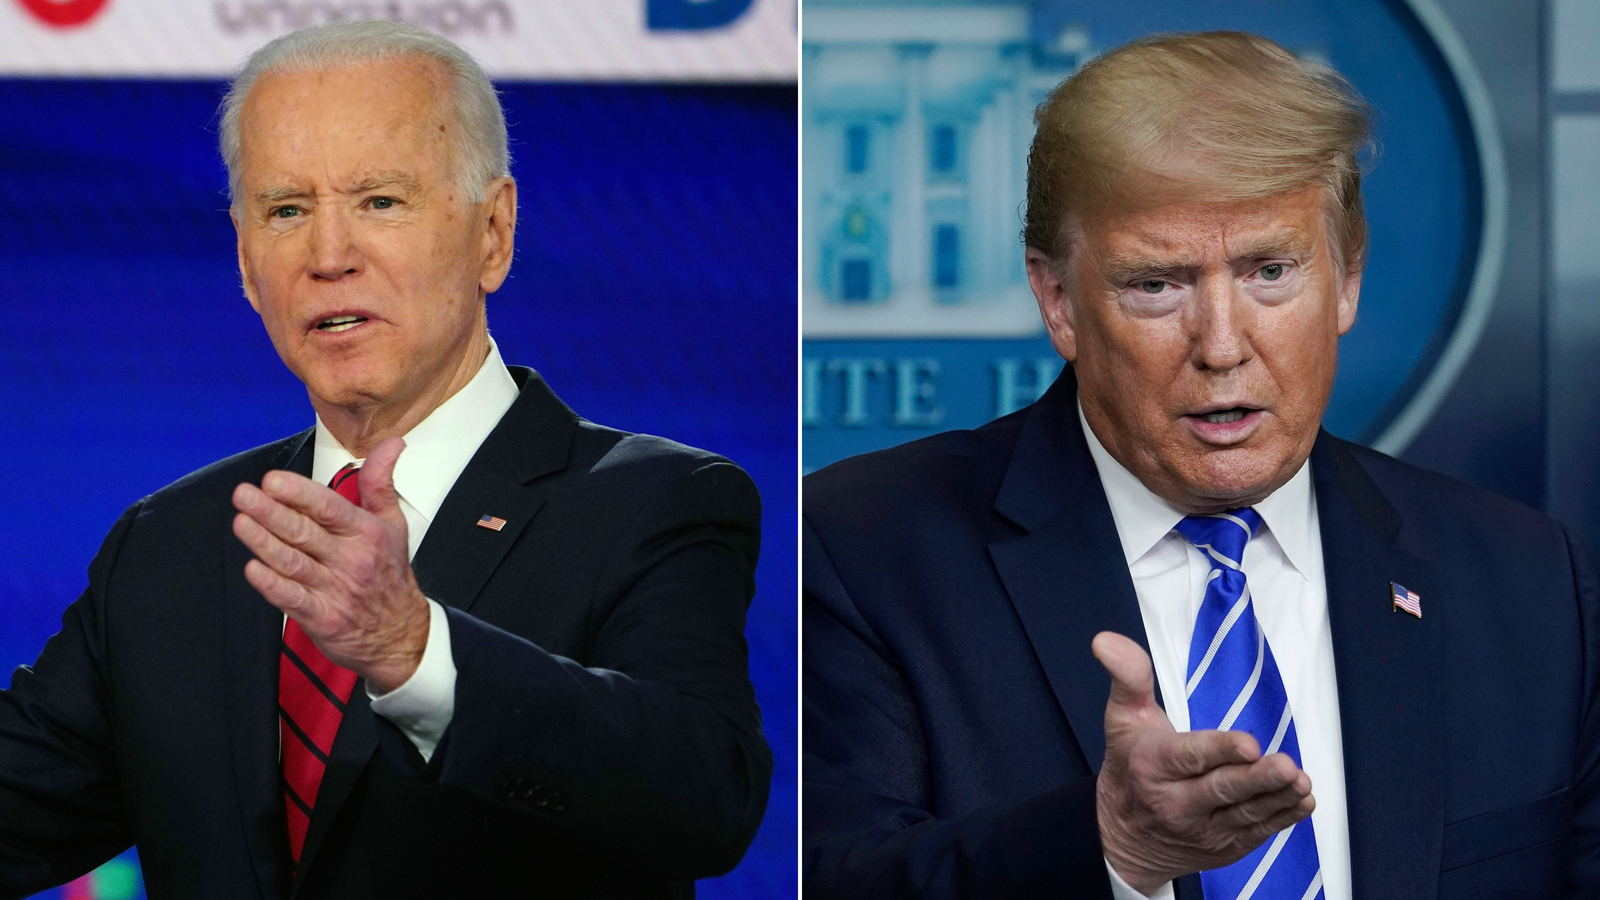 America's unrest sets up battle for nation's soul between Trump and Biden